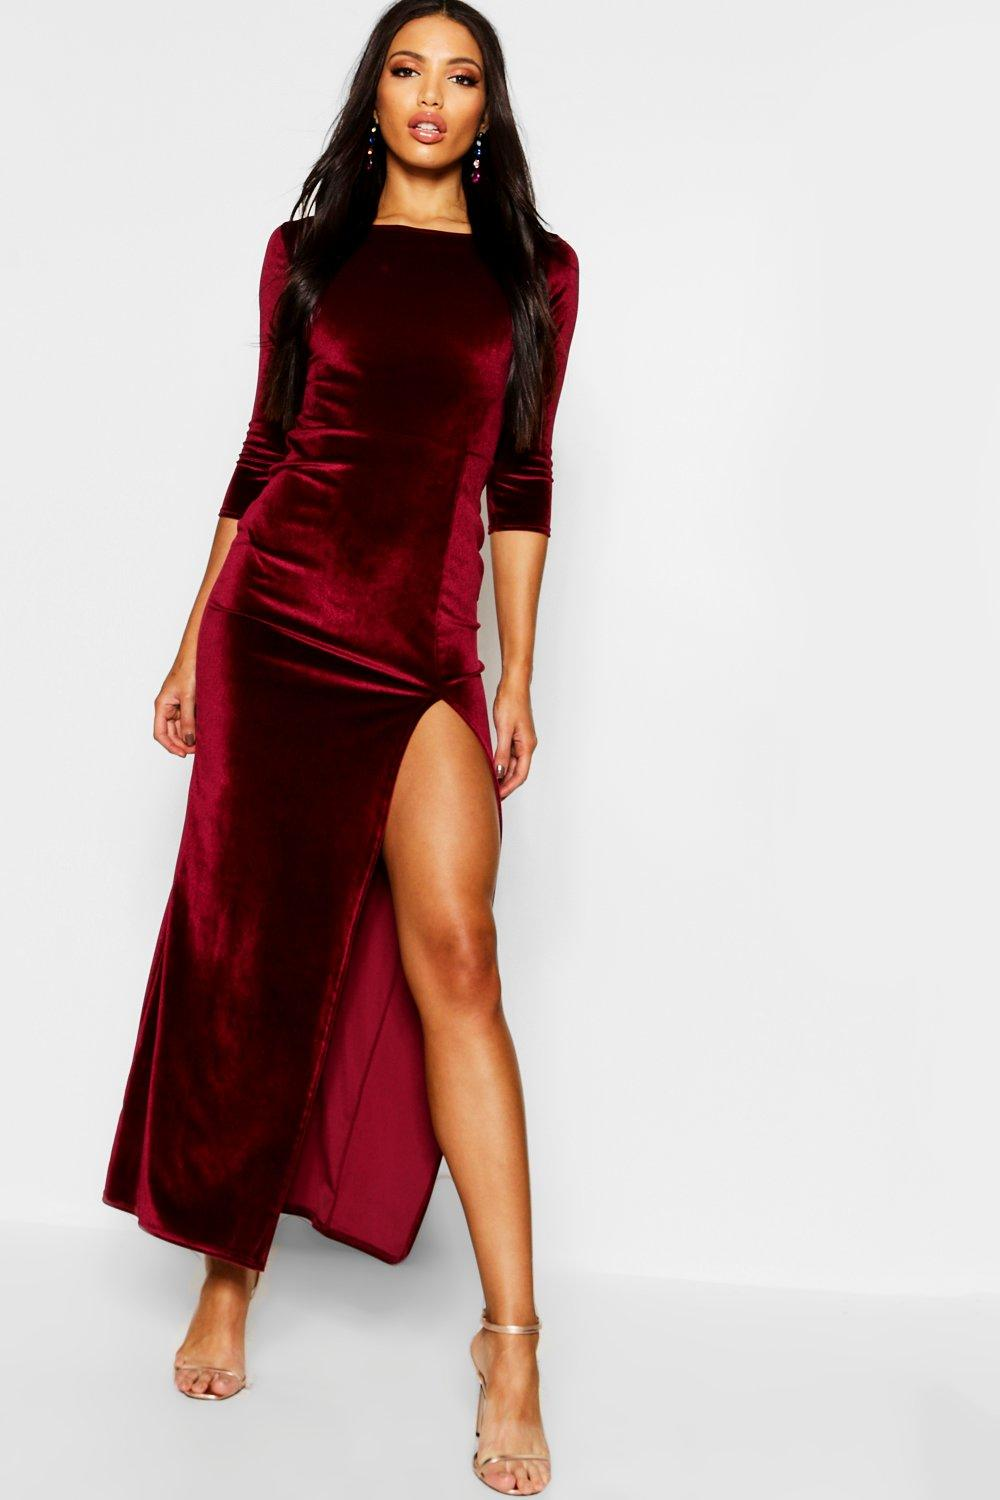 423416c44dfd Velvet Long Sleeve Maxi Dress. Hover to zoom